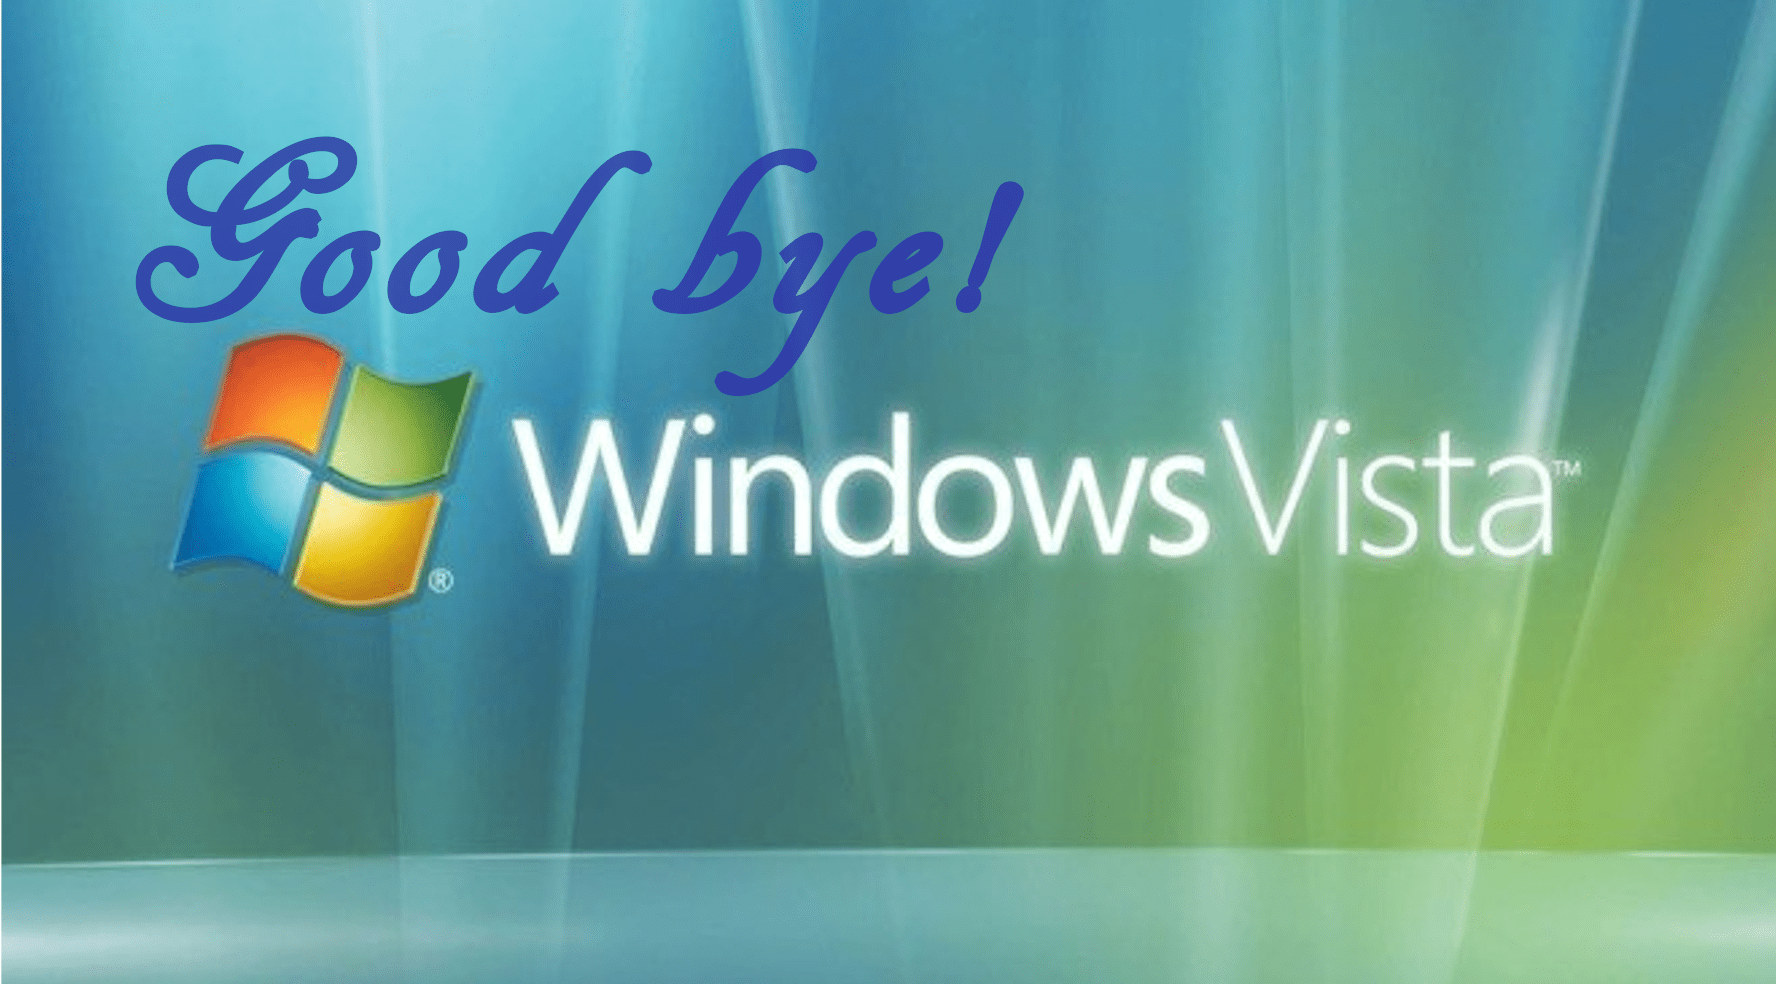 Computer von Windows Vista auf Windows 10 upgraden – So geht's!